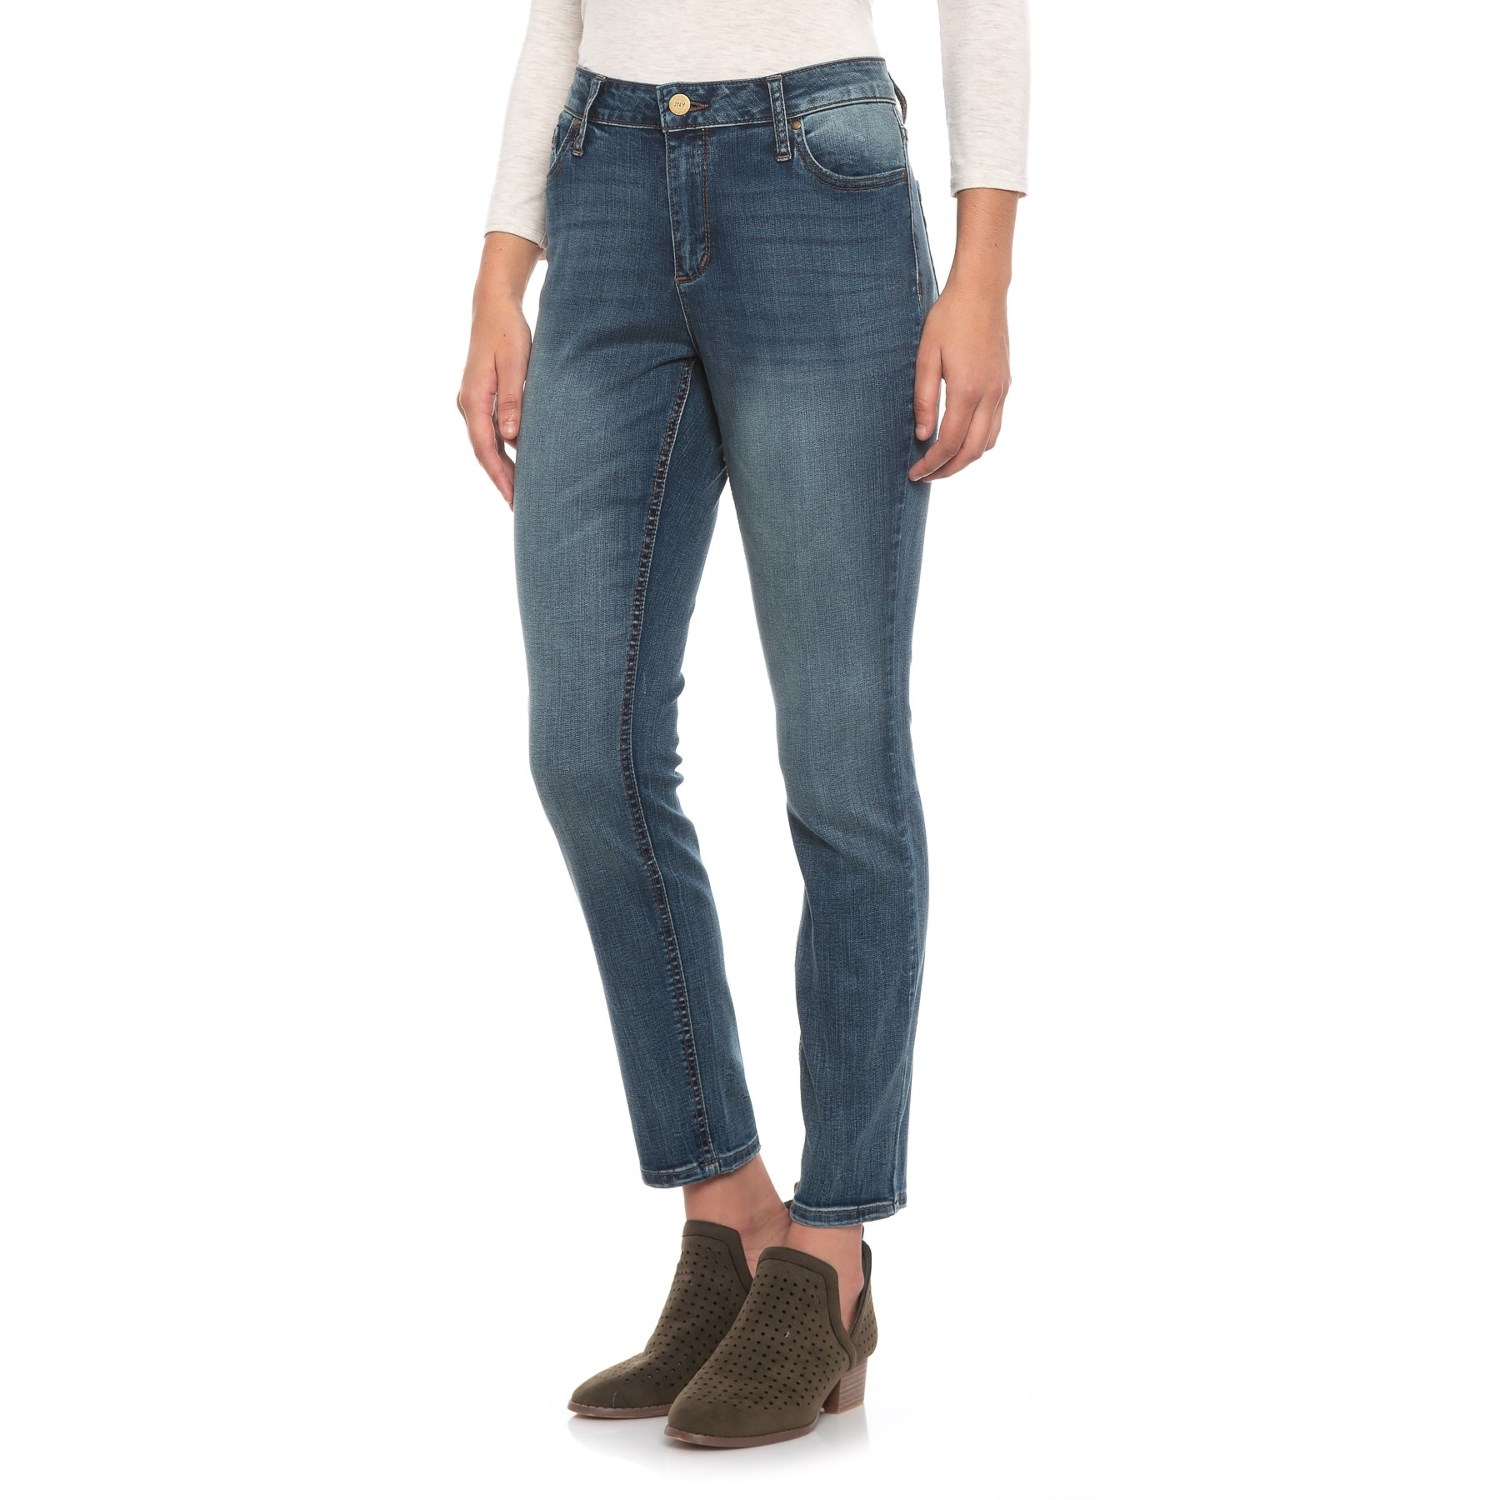 Denizen Jeans Women